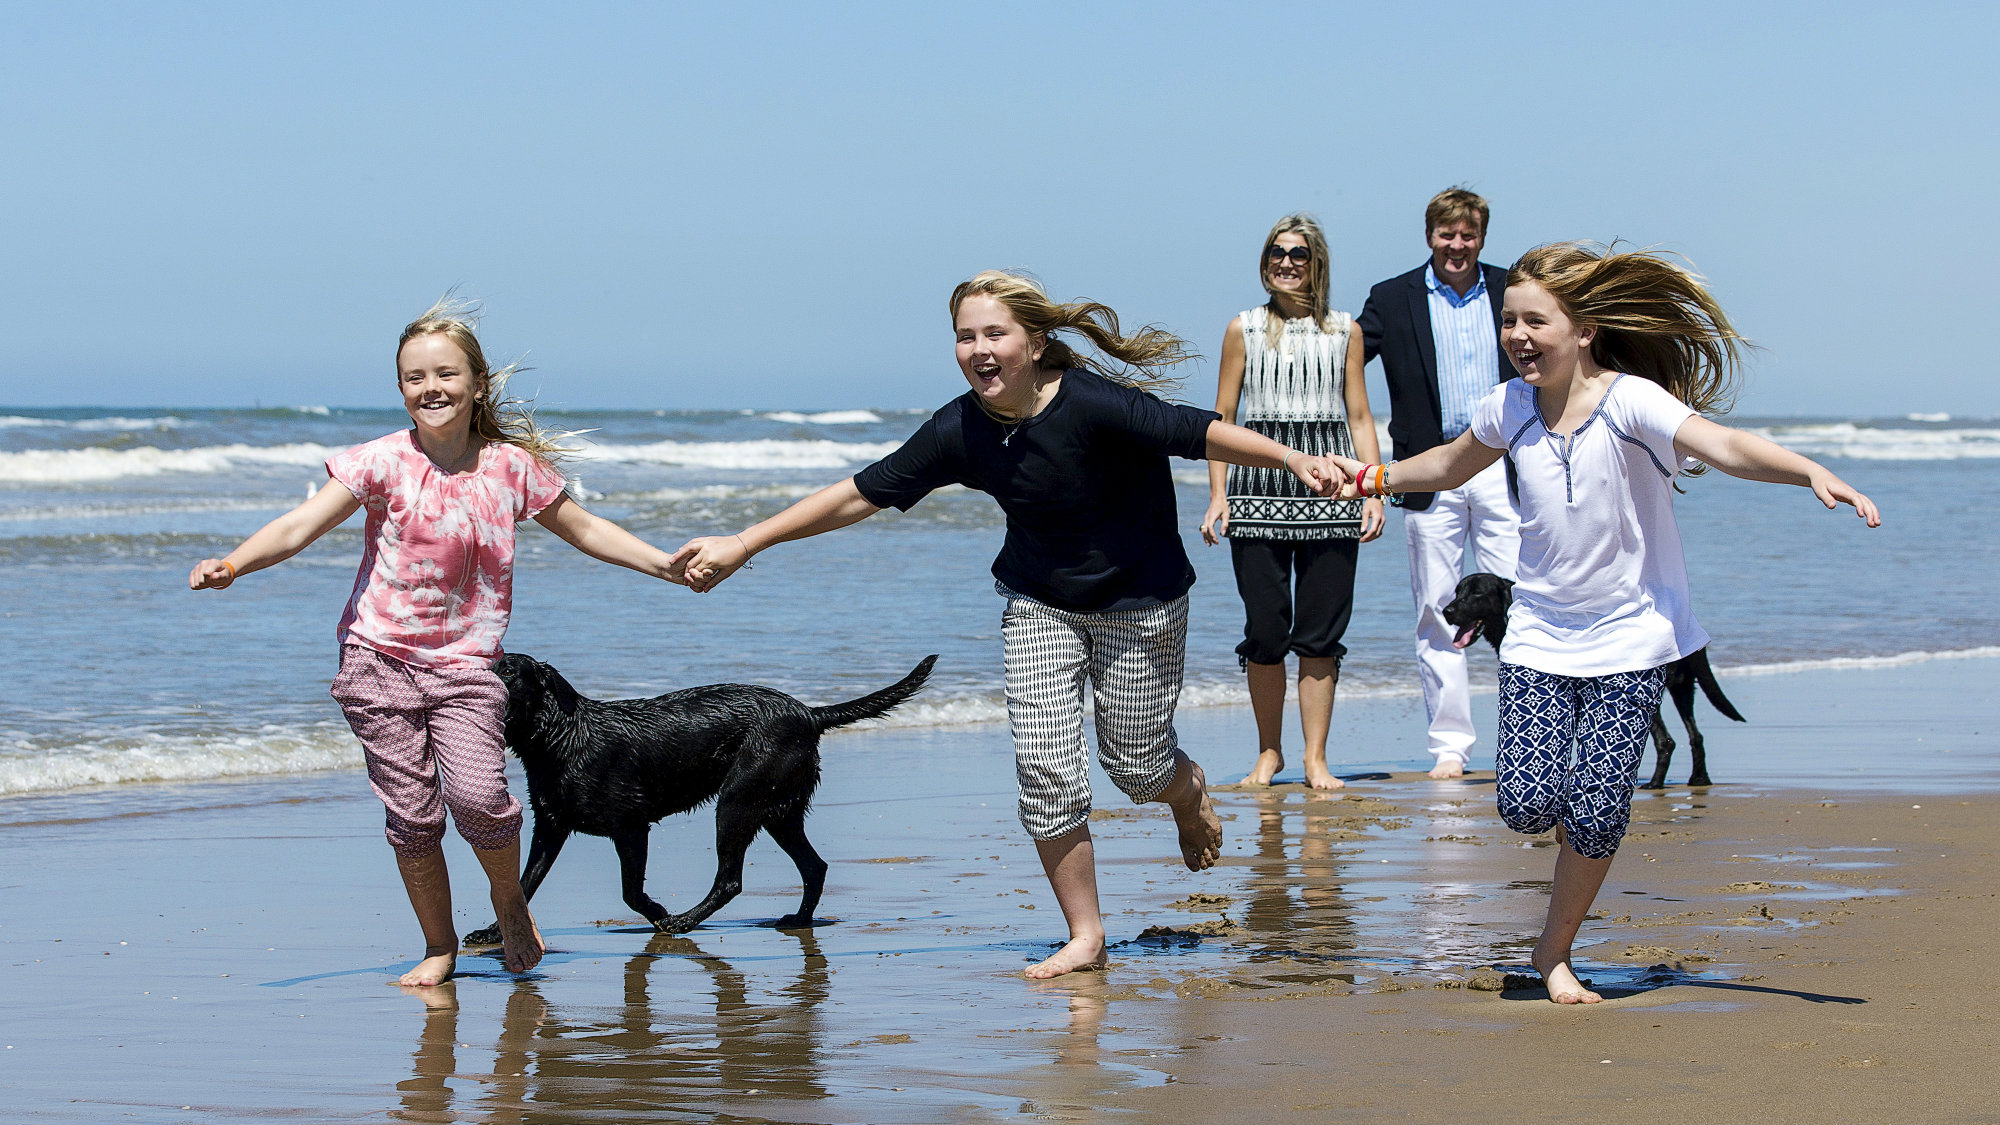 Princess Ariane (L), Princess Catharina-Amalia (C) and Princess Alexia (R), play on the beach during a photo session as their parents, King Willem-Alexander and Queen Maxima of the Netherlands look on near Wassenaar, the Netherlands, July 10, 2015.